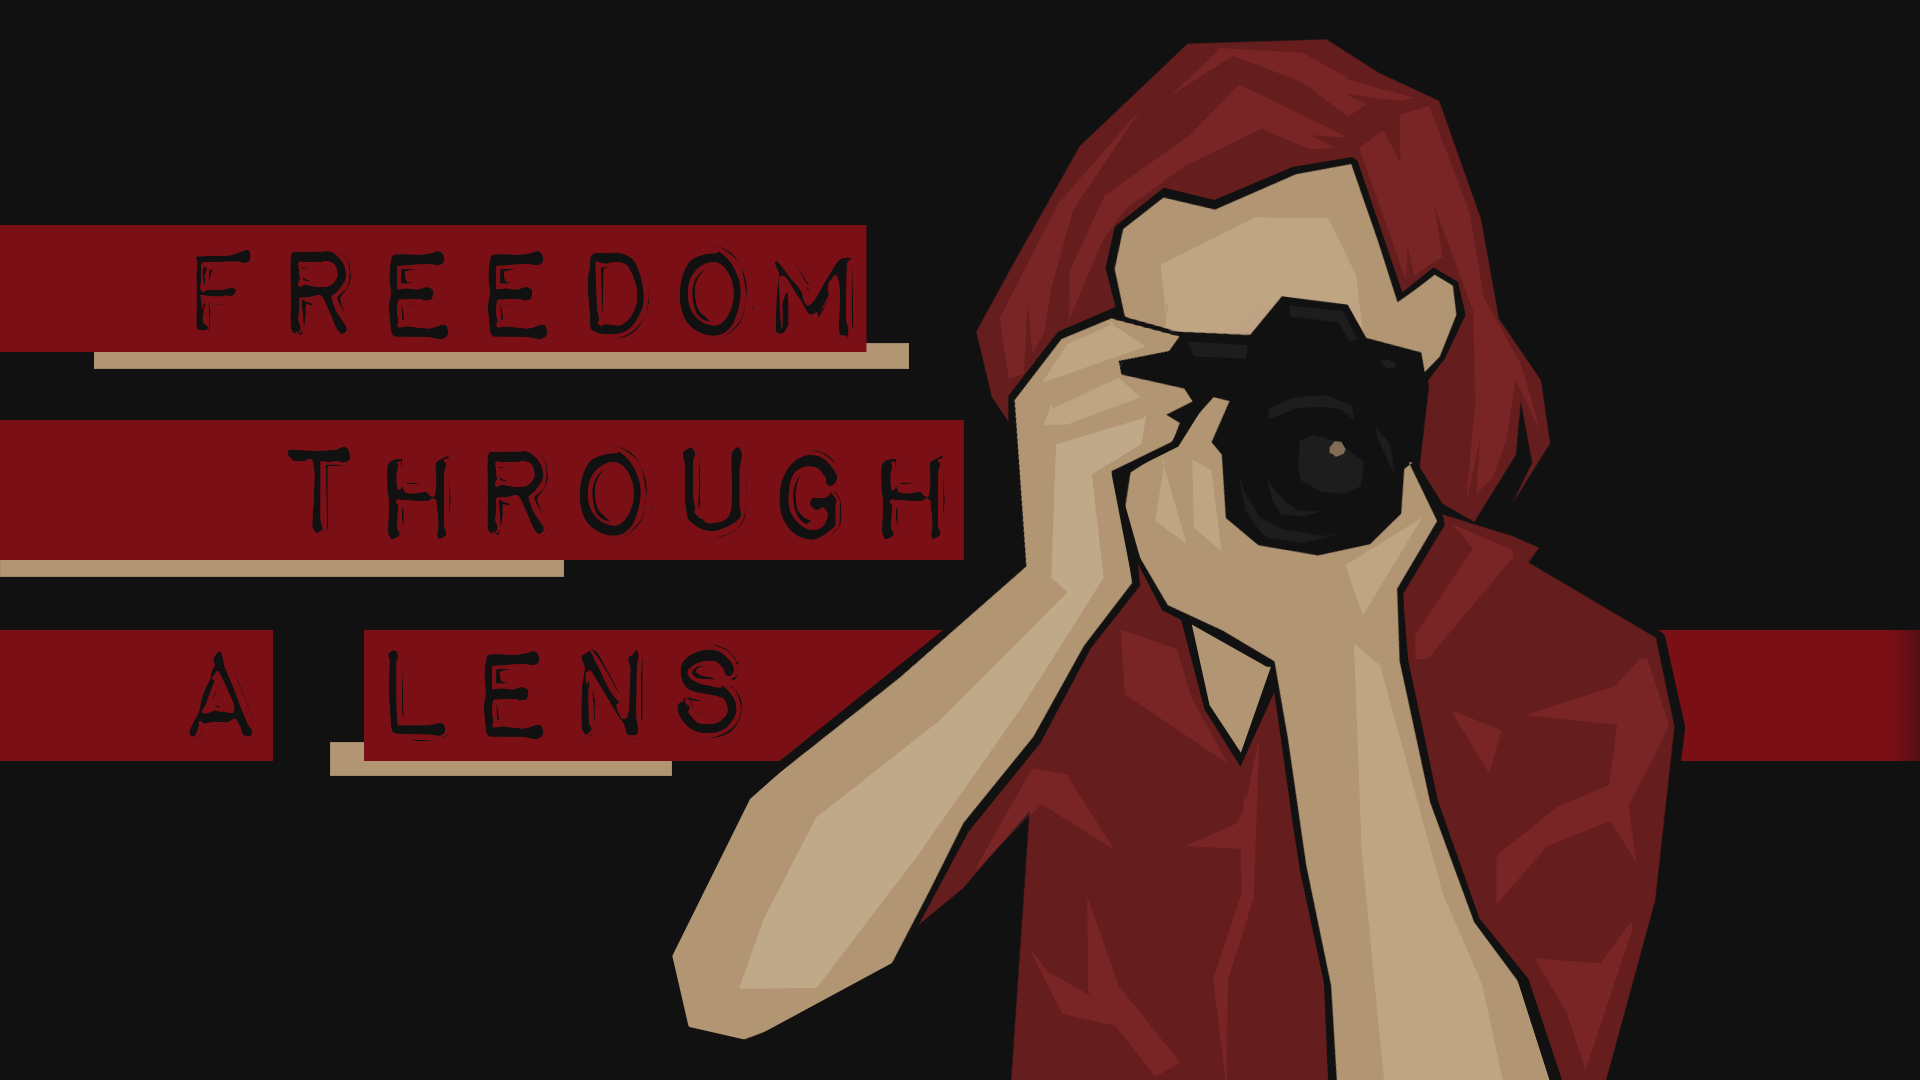 Freedom Through A Lens